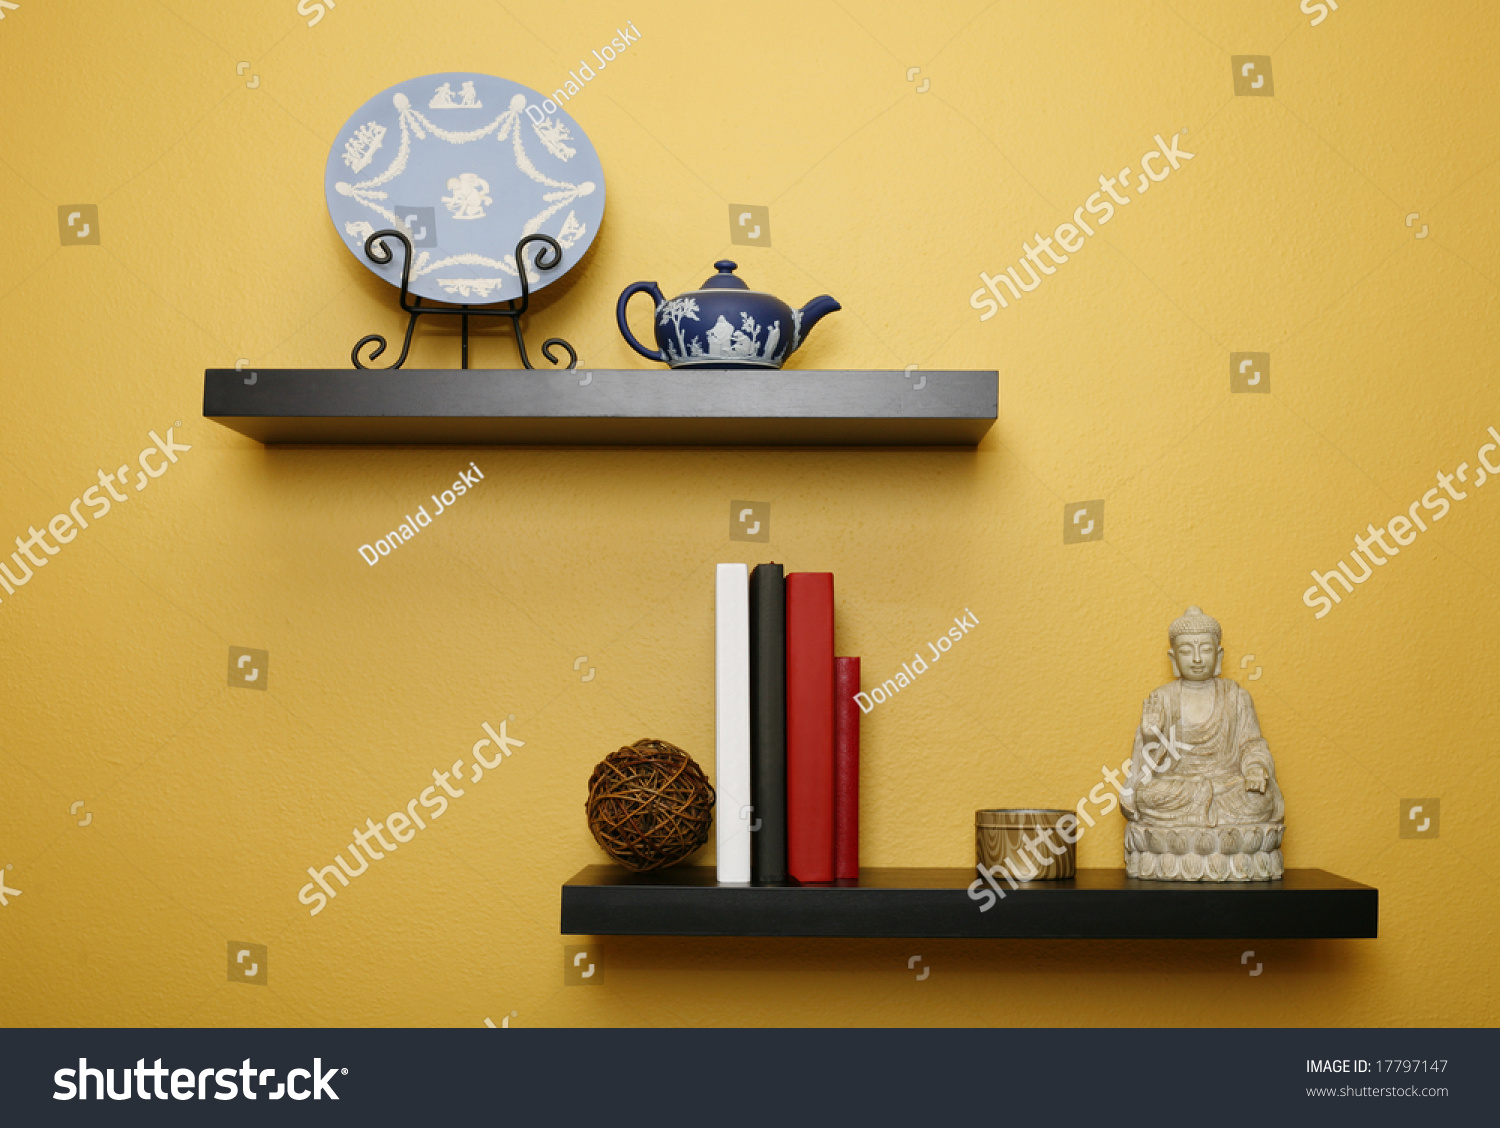 Living Room Wall Shelves Stock Photo 17797147 - Shutterstock